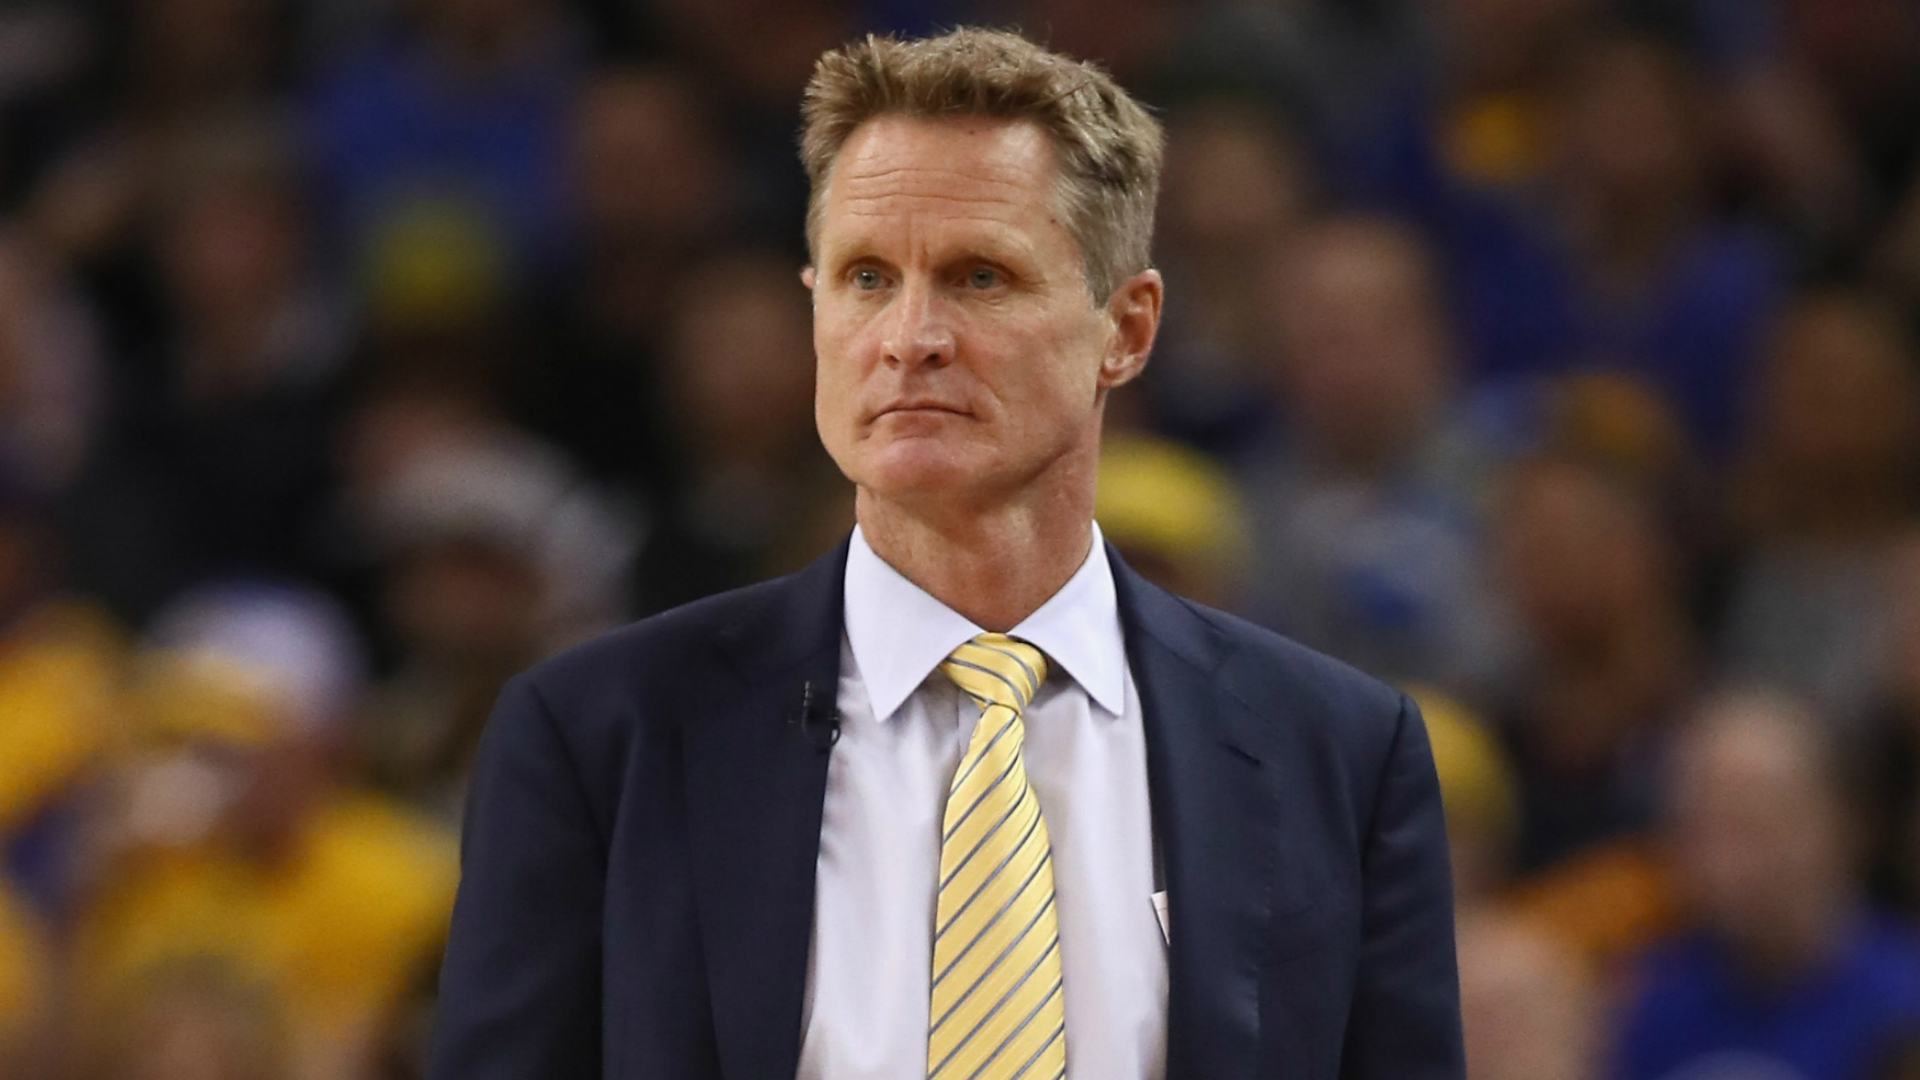 Steve Kerr says this has been his toughest stretch as Warriors coach: 'We're faced with real adversity'